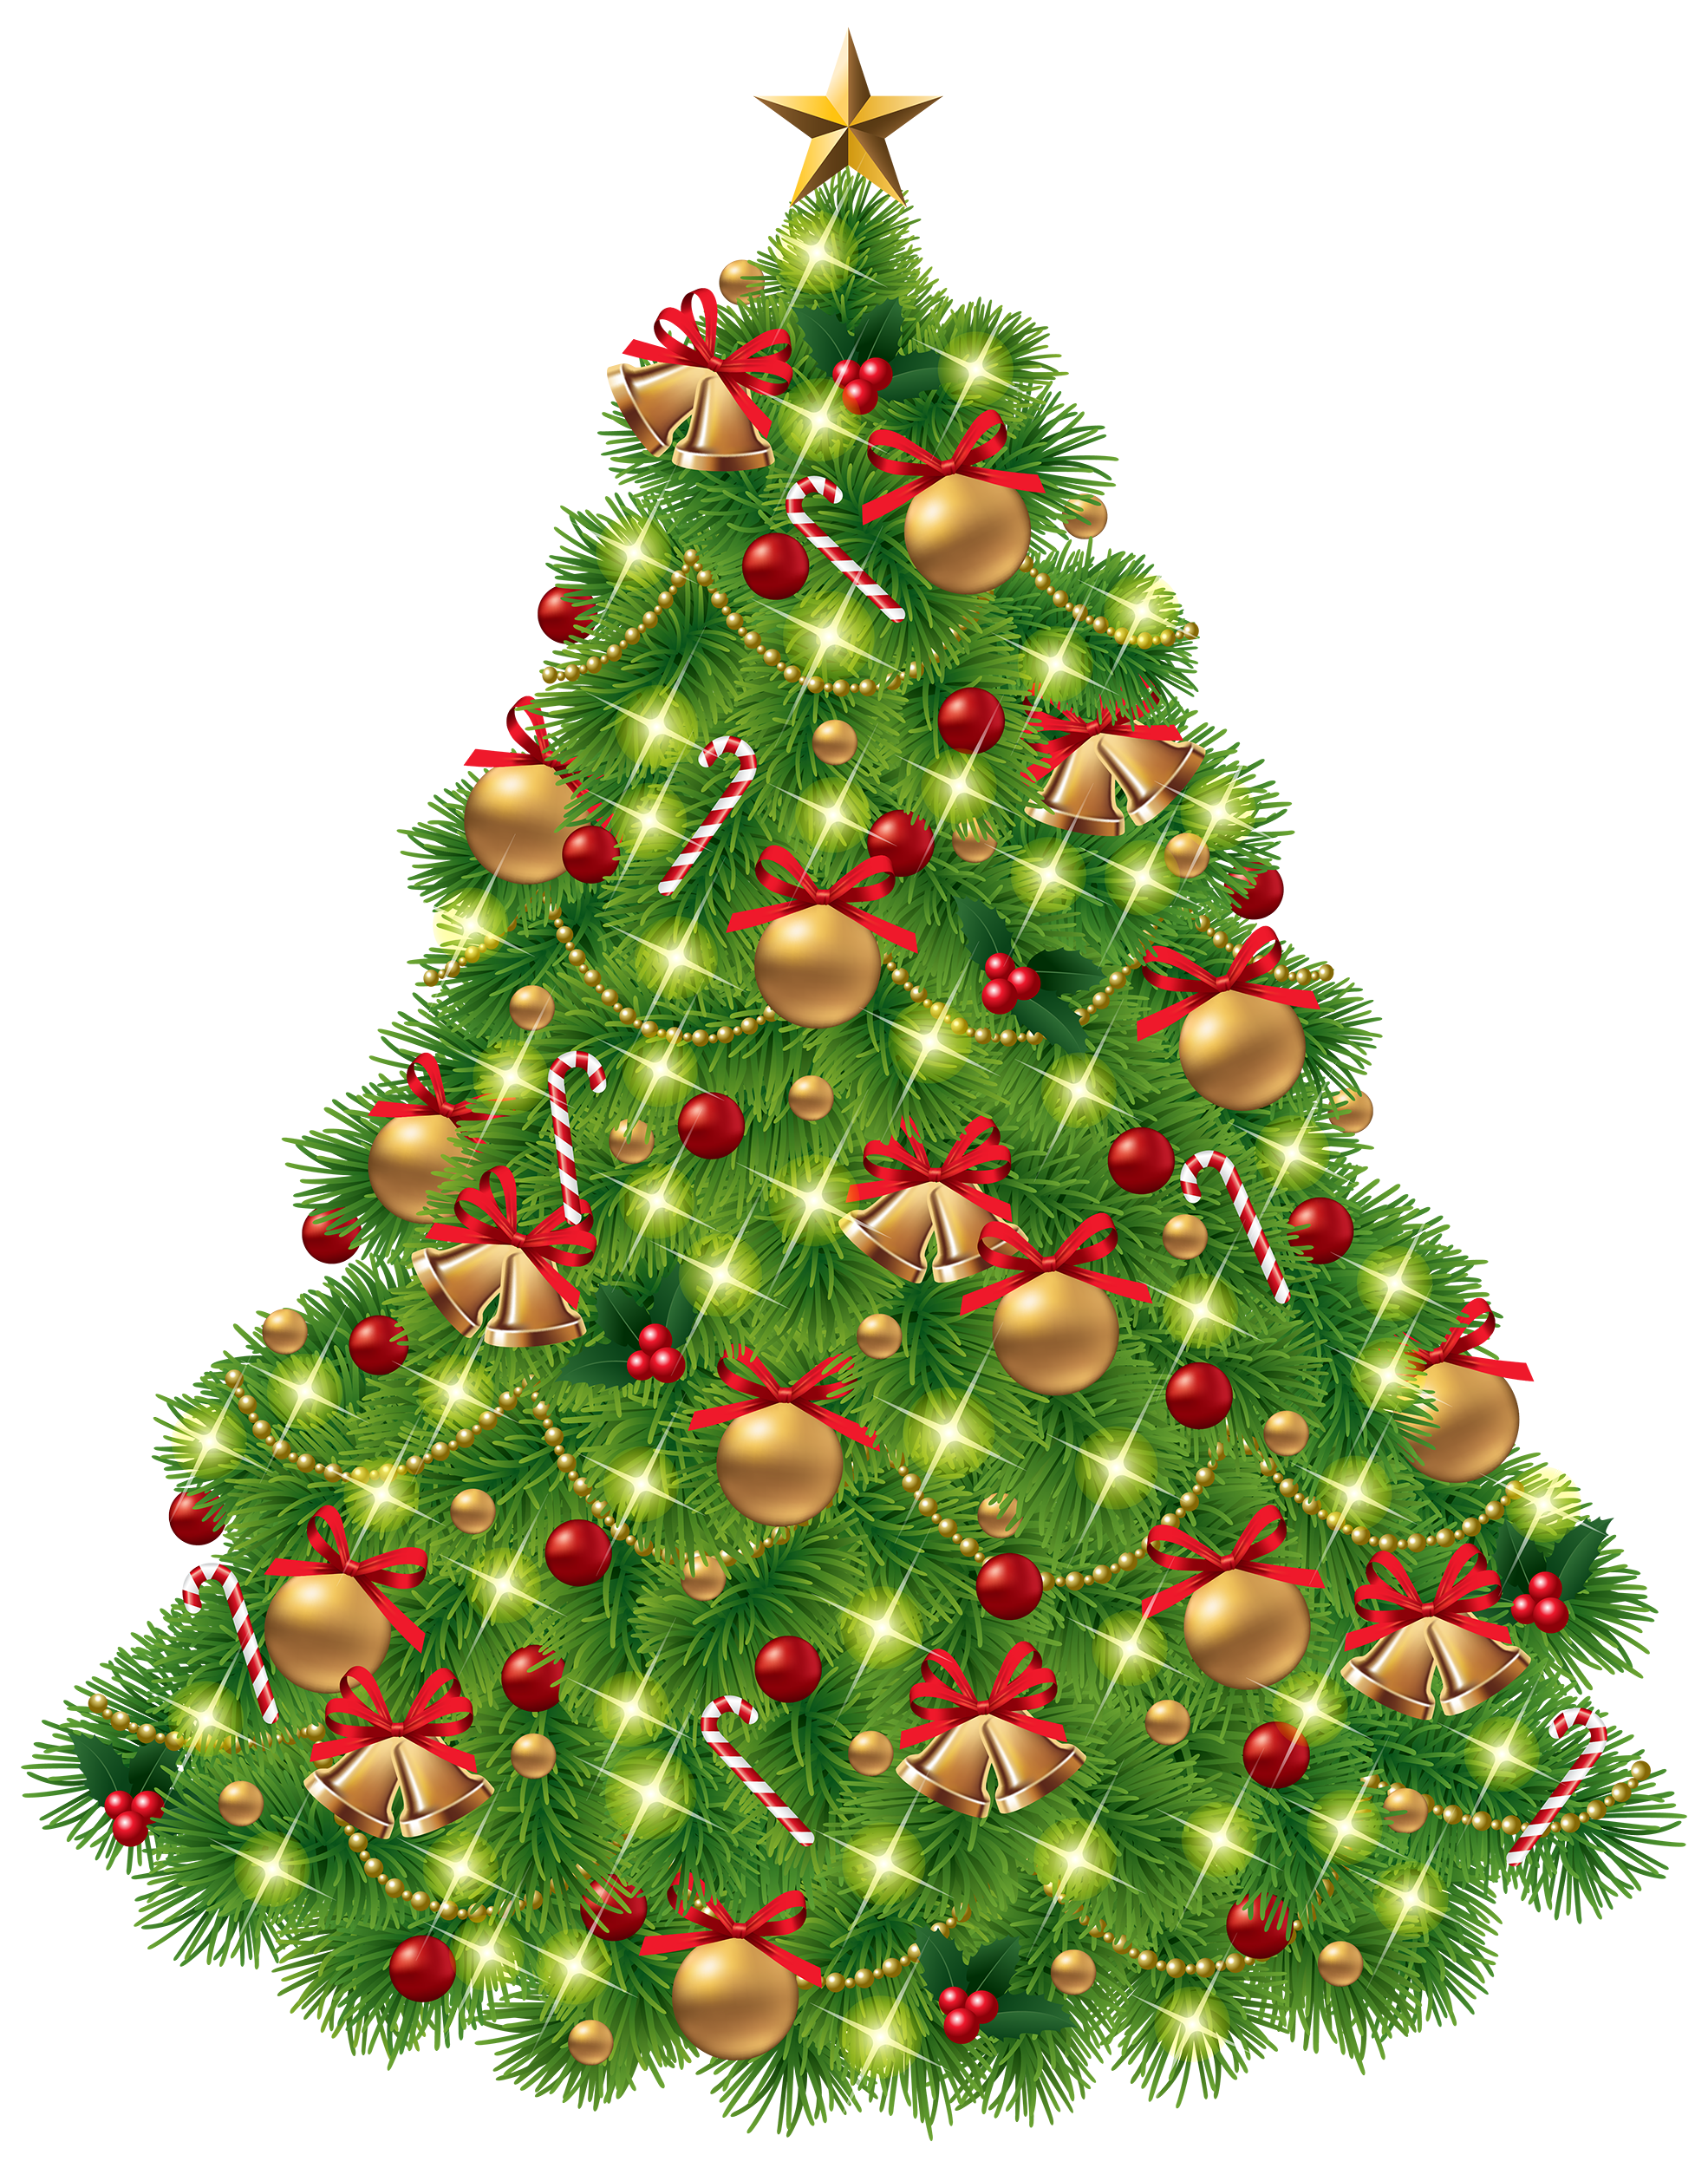 Christmas tree clip art png. Clipart best web